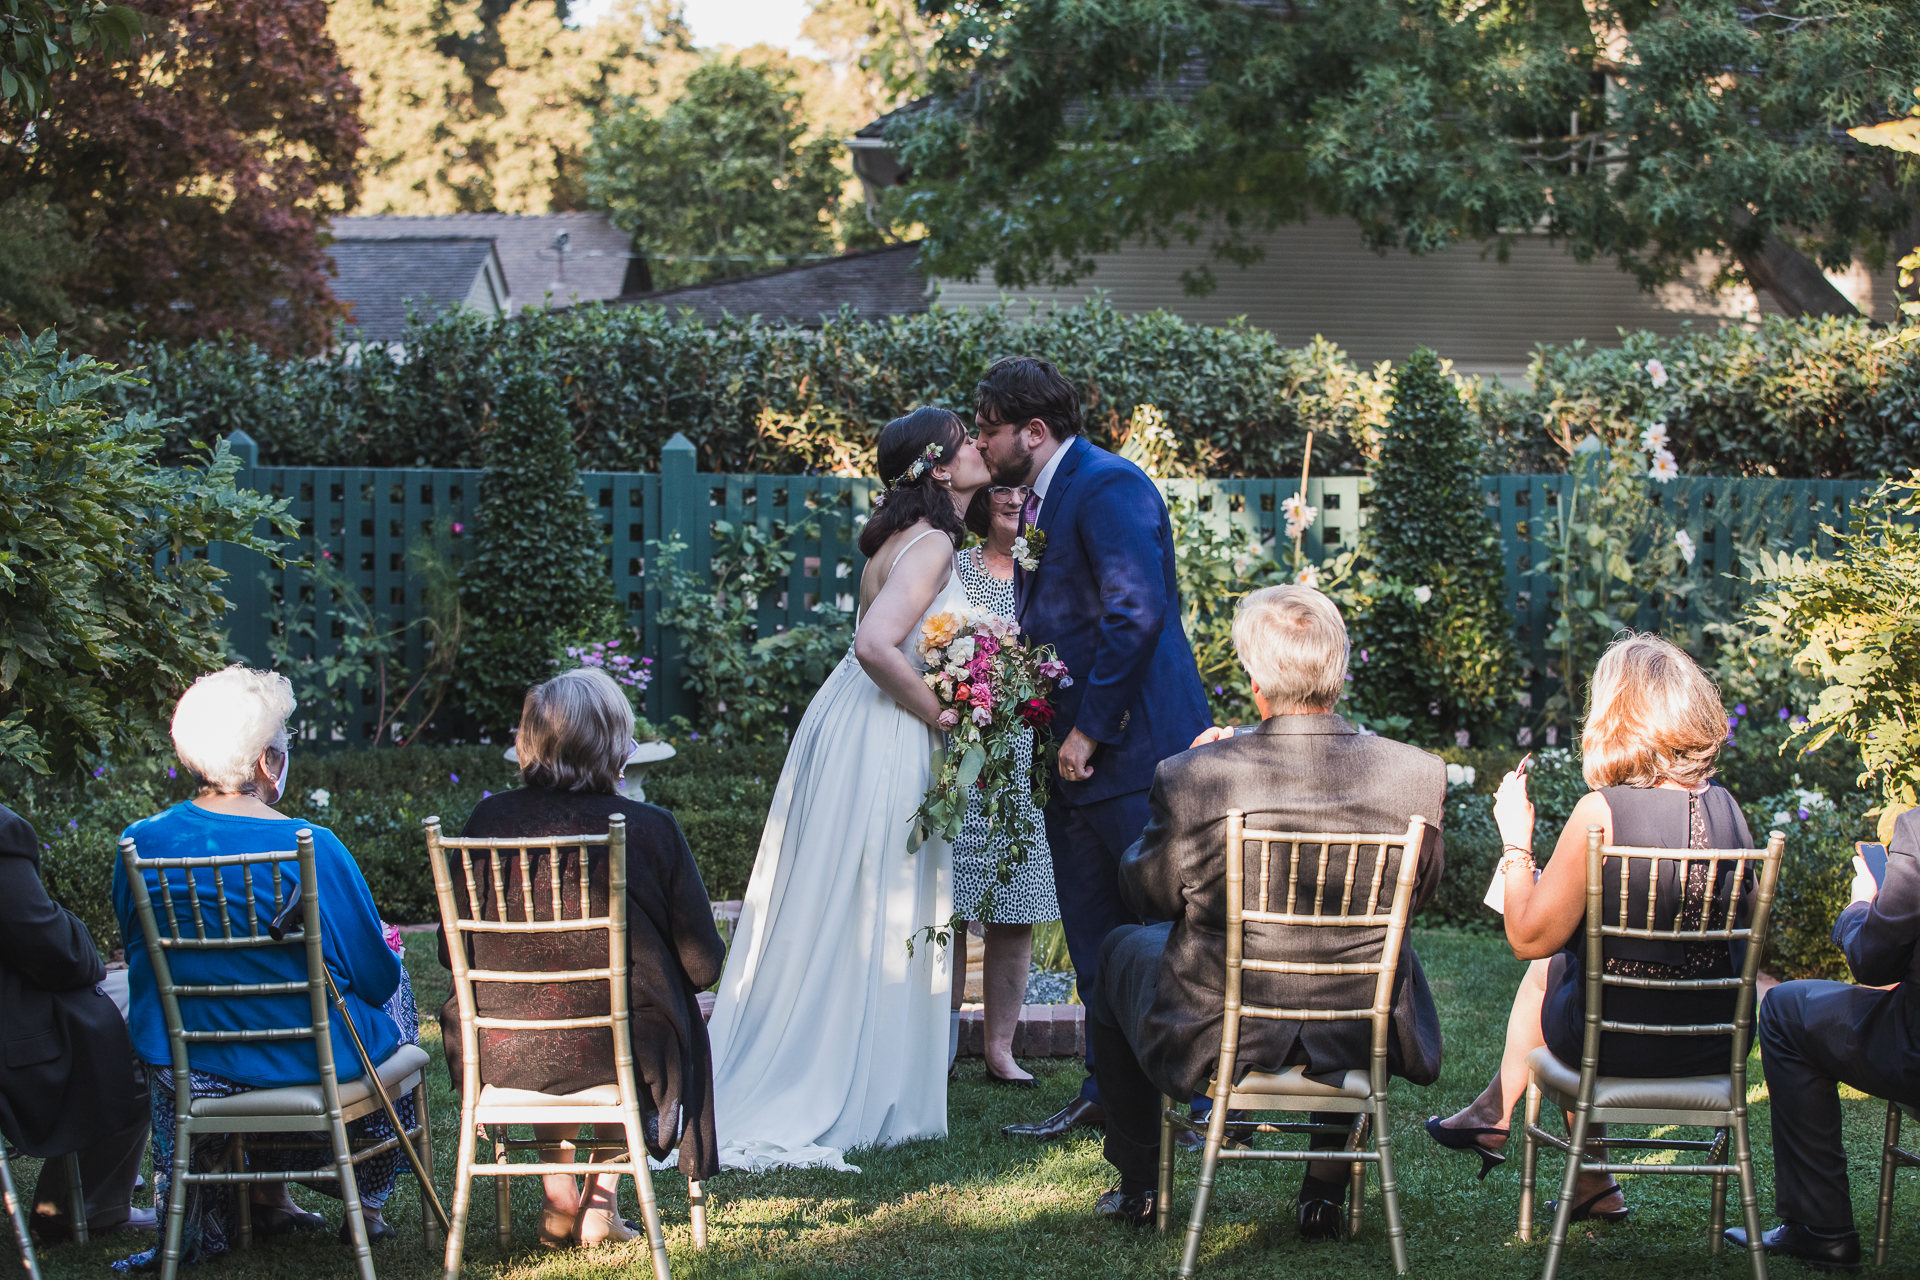 Elizabeth F. Gamble Garden Wedding Venue Image | The kiss at the end of the outdoor ceremony